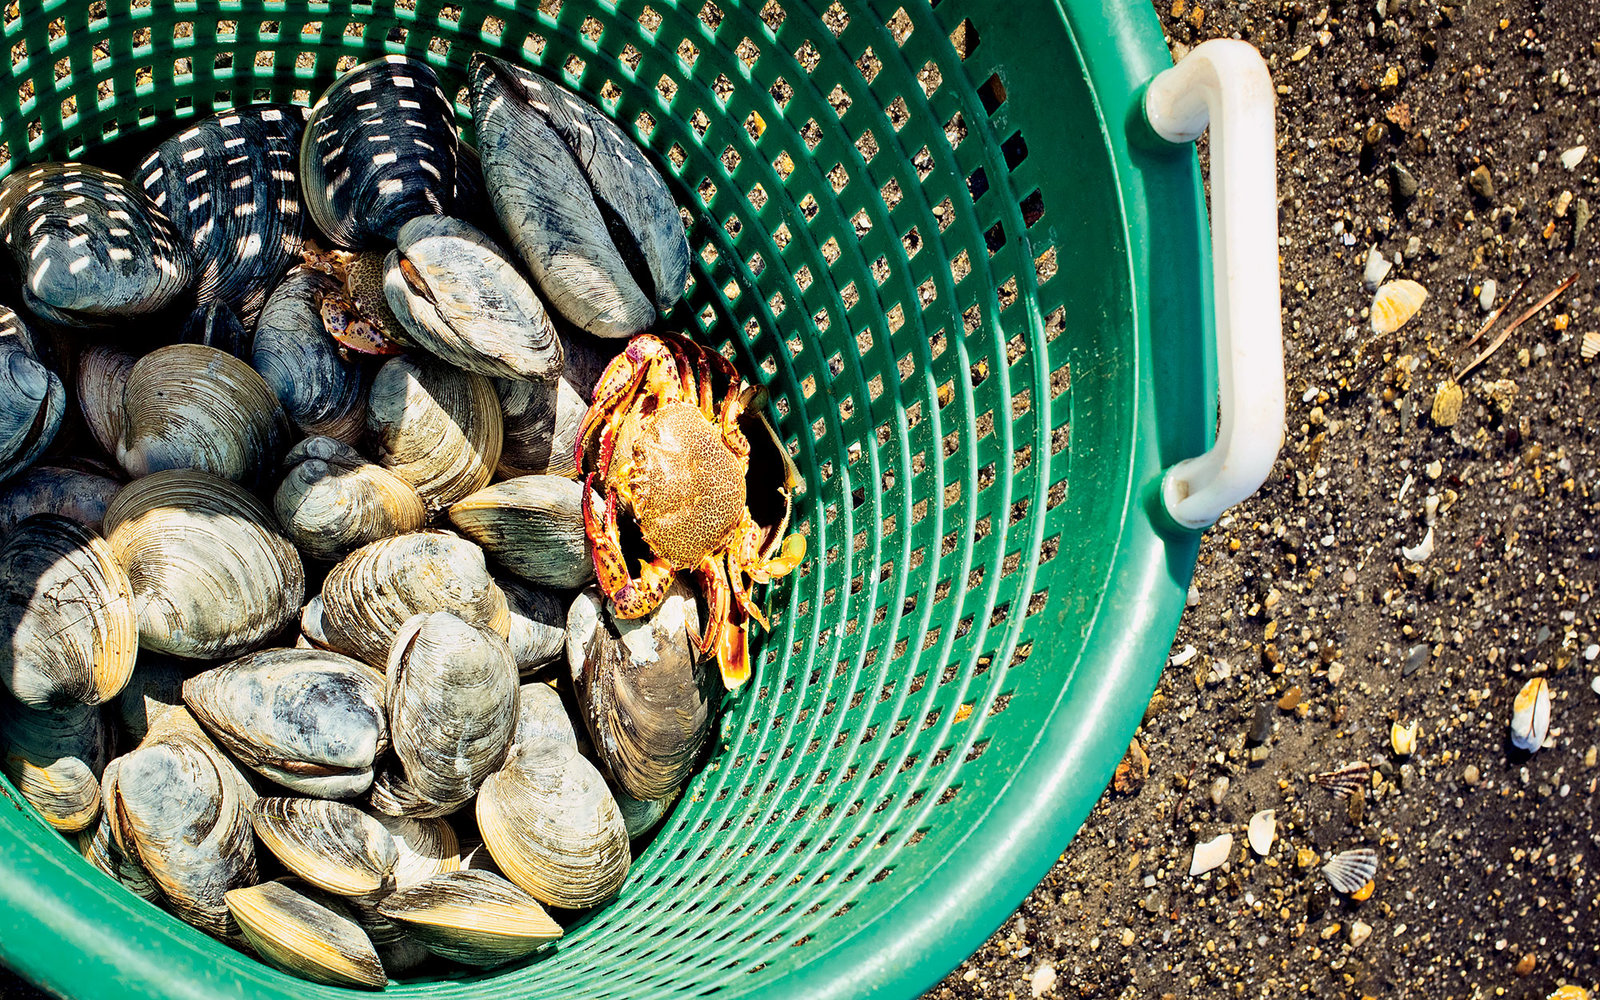 Clamming 101: How to Dig for Your Own Dinner